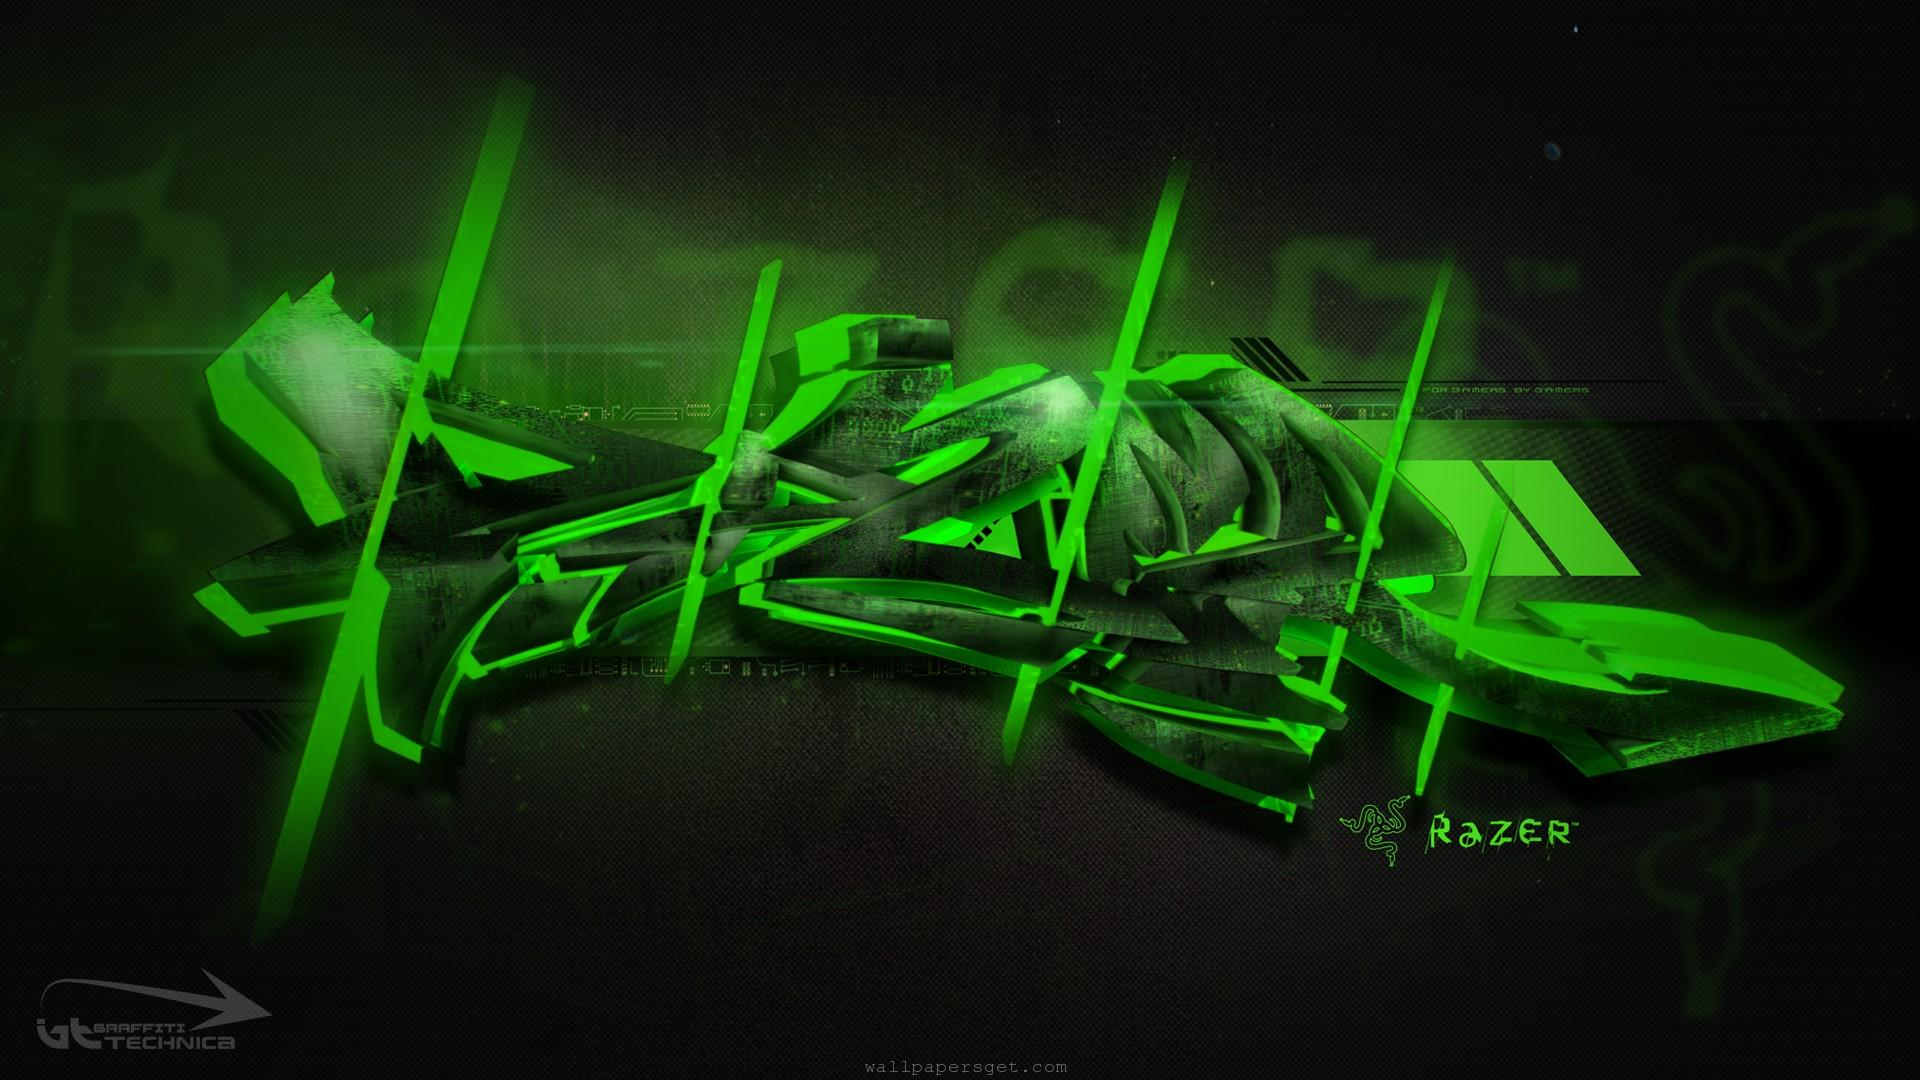 graffiti razer wallpaper overclocking abstract computers 1920x1080